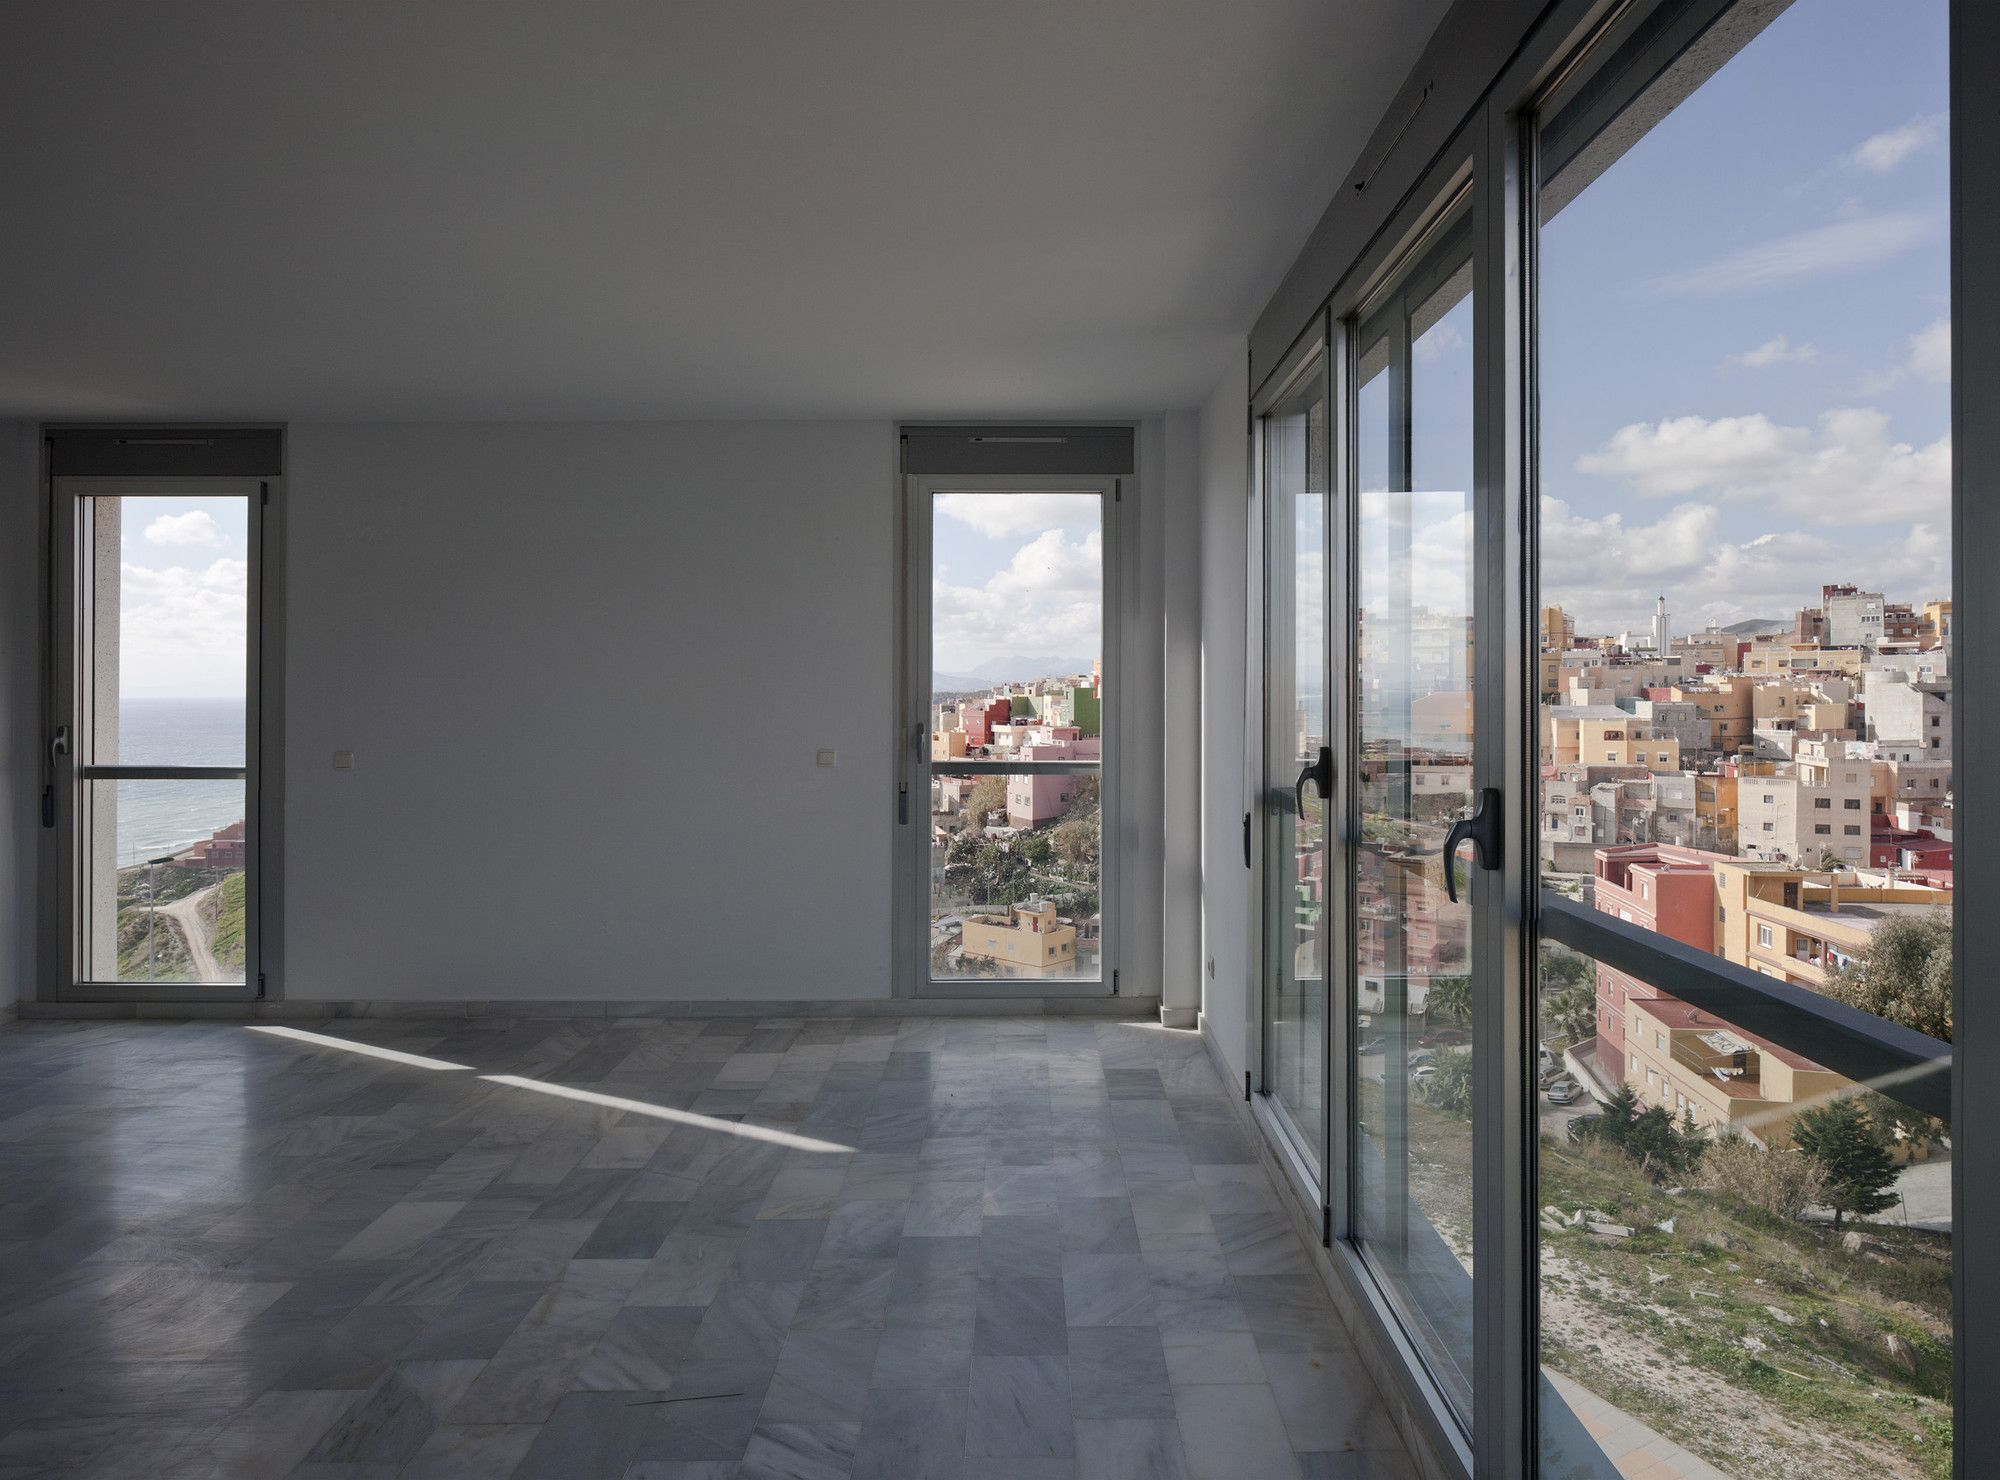 Gallery of Social Housing In Ceuta / IND [Inter National Design] - 5